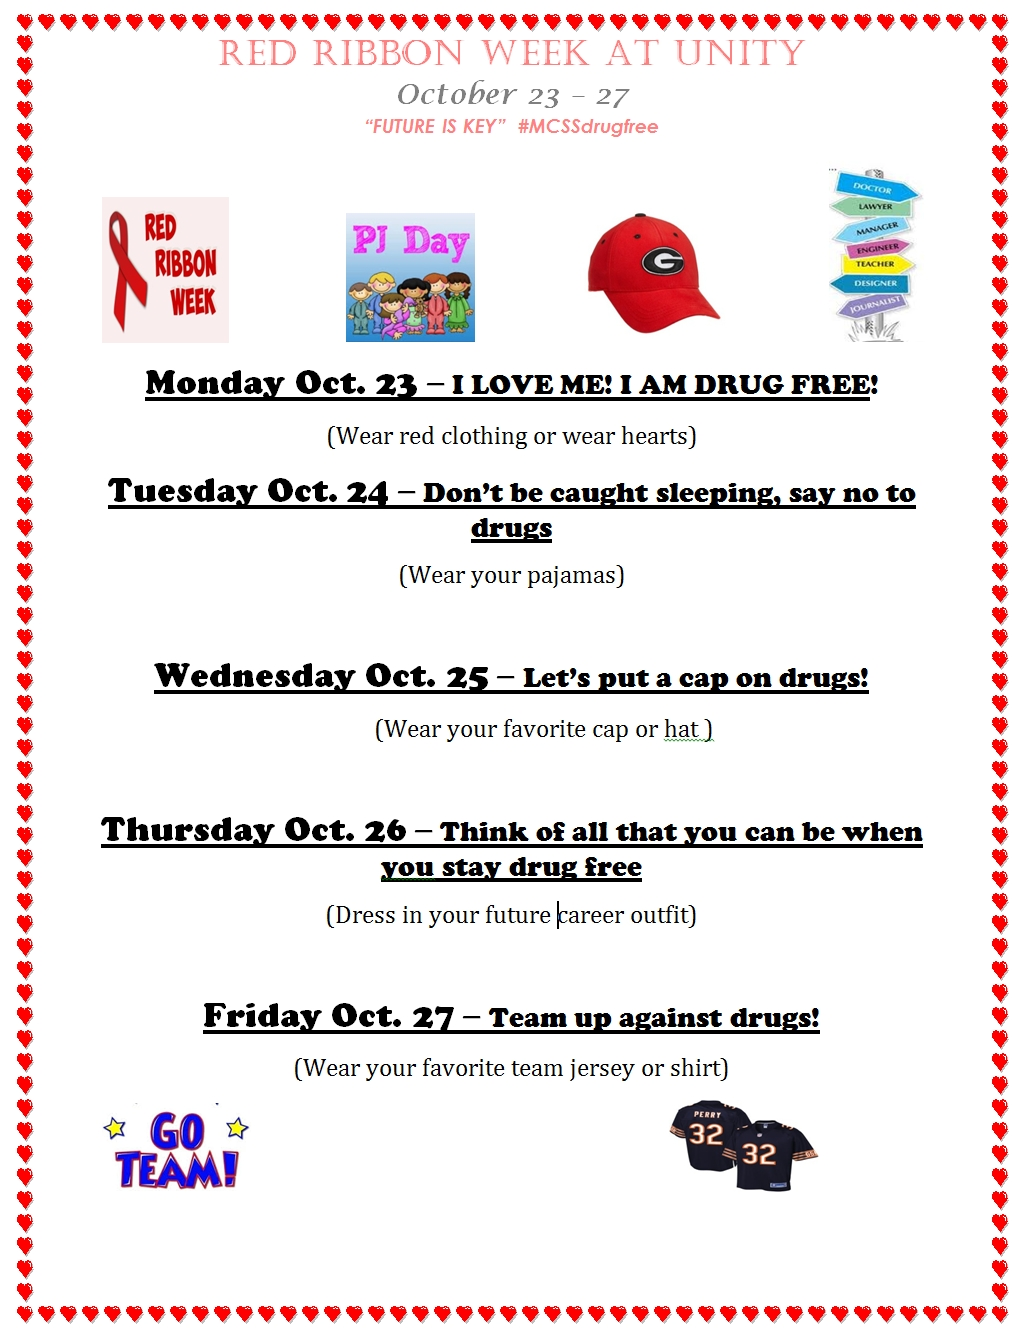 10 Lovable Red Ribbon Week Ideas For Elementary School red ribbon week activities at ues october 23rd 27th unity 1 2020